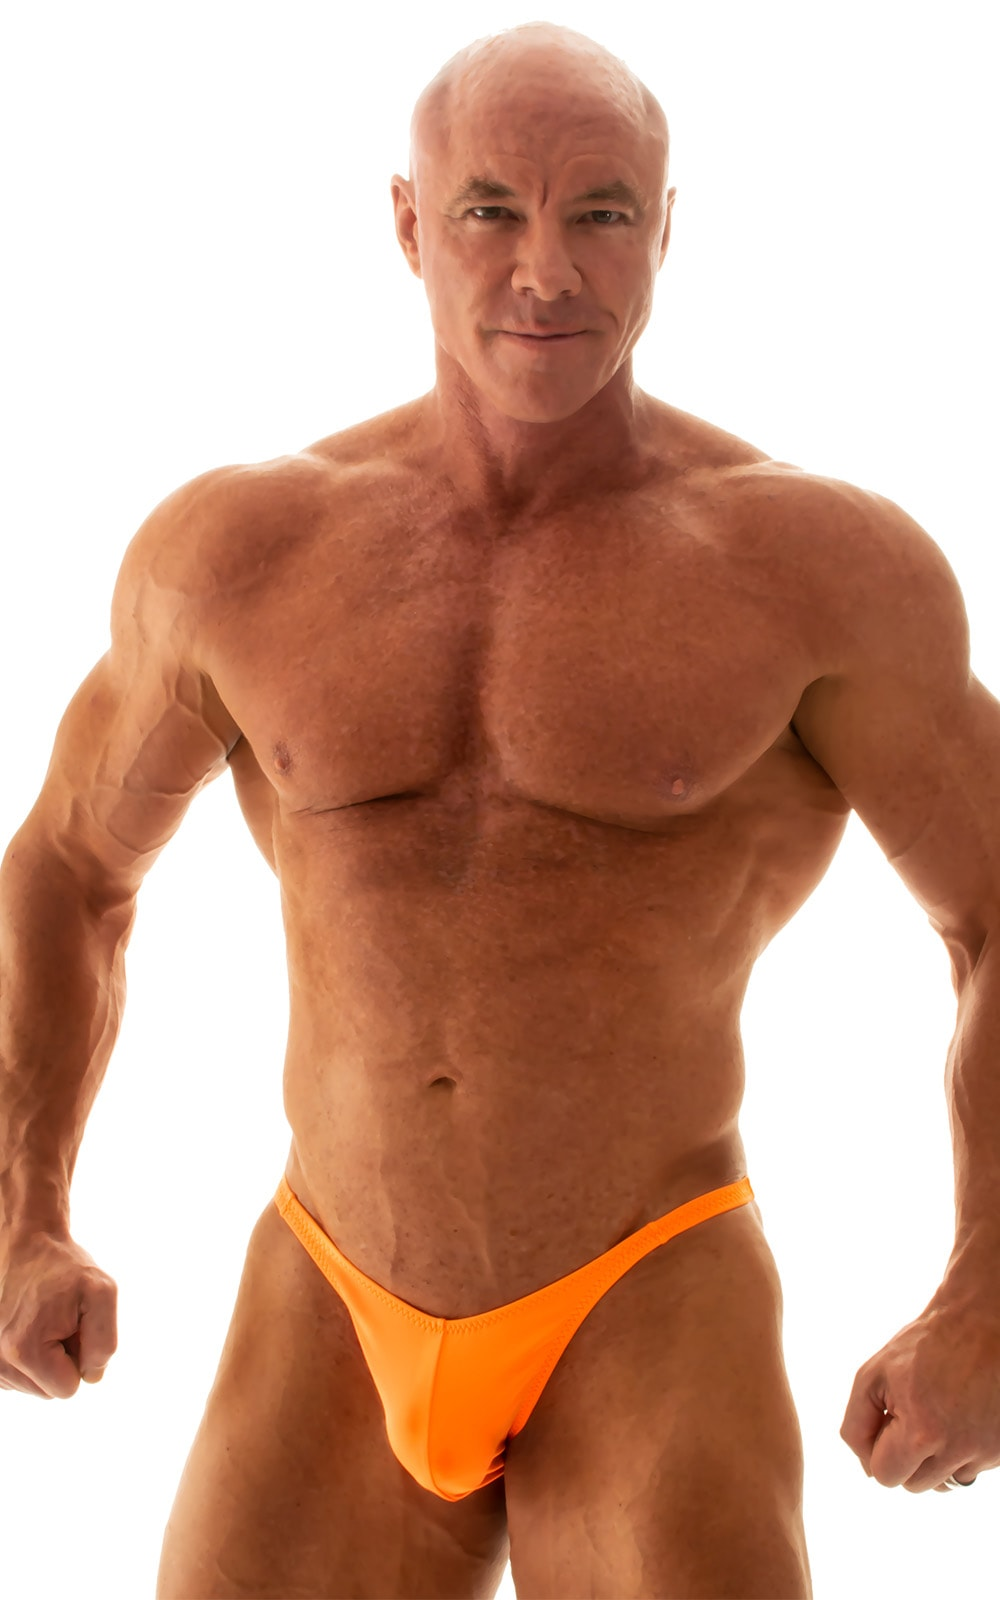 Fitted Pouch - Puckered Back - Posing Suit in Neon Orange 1